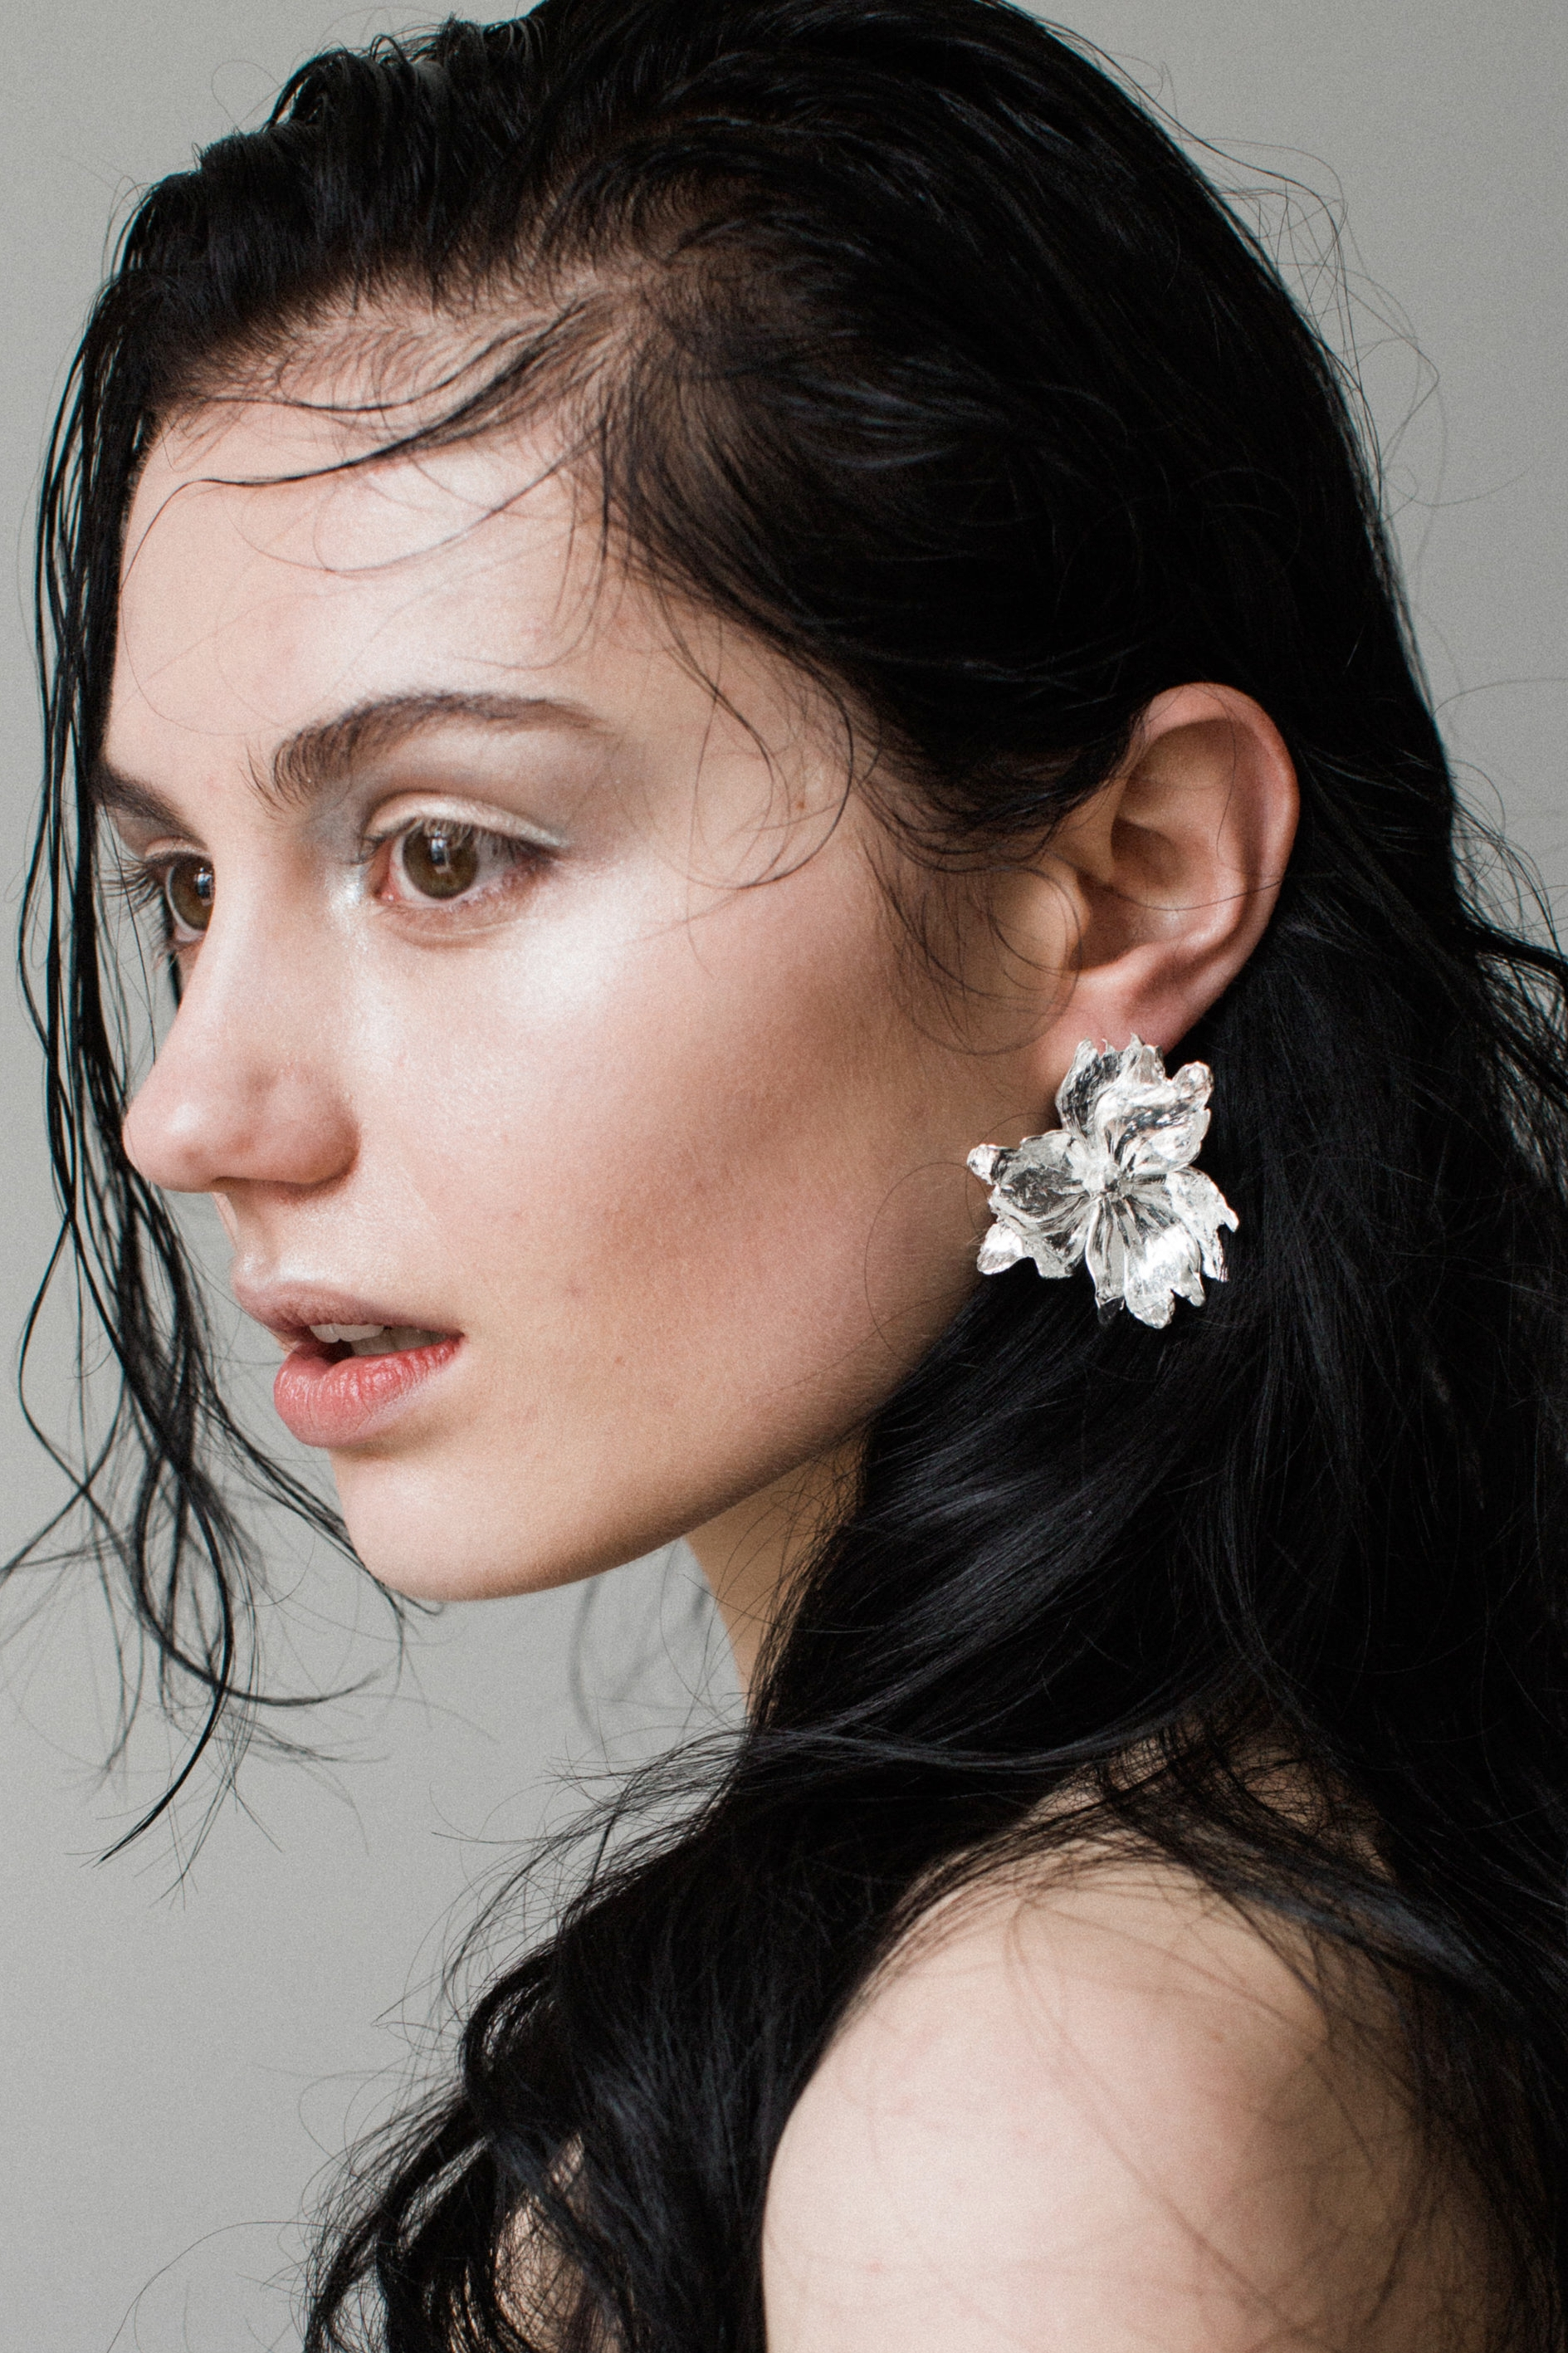 The Flore Earrings Sterling Silver Handmade by Naturae Design